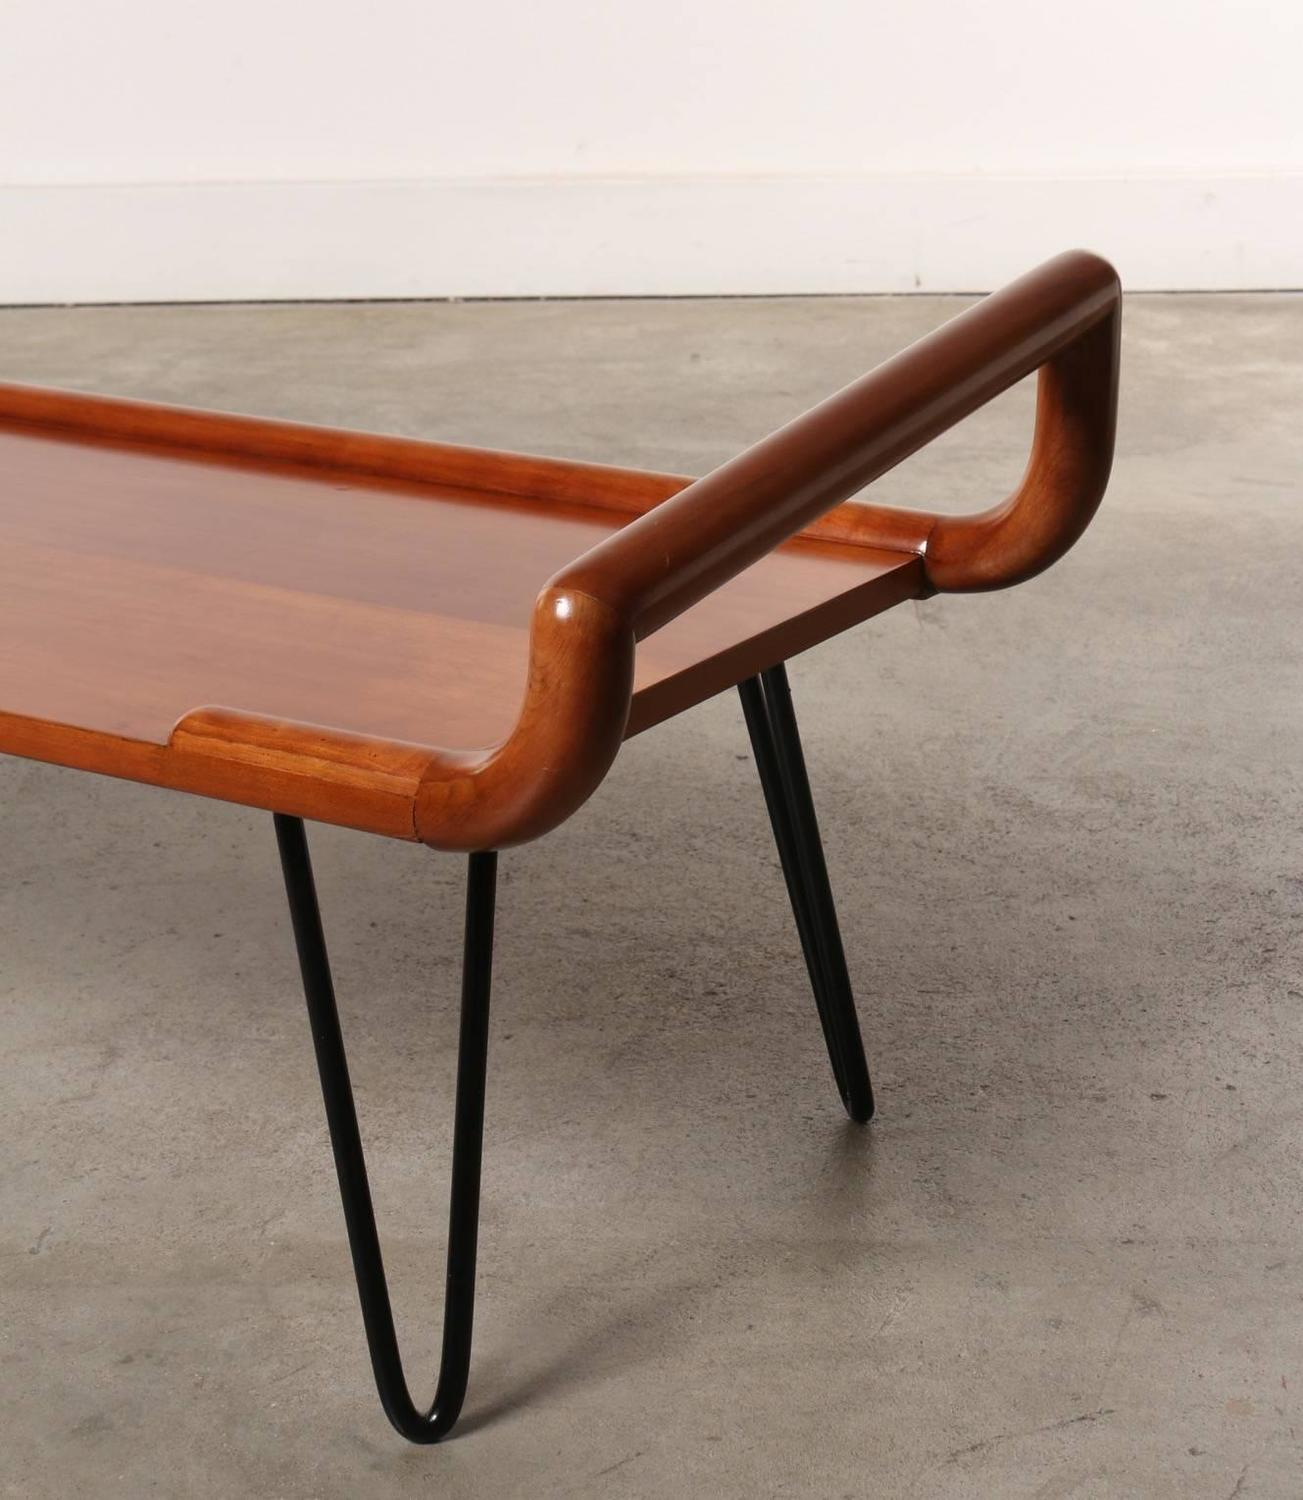 Hairpin Legs Table : Midcentury Table or Bench with Hairpin Legs at 1stdibs